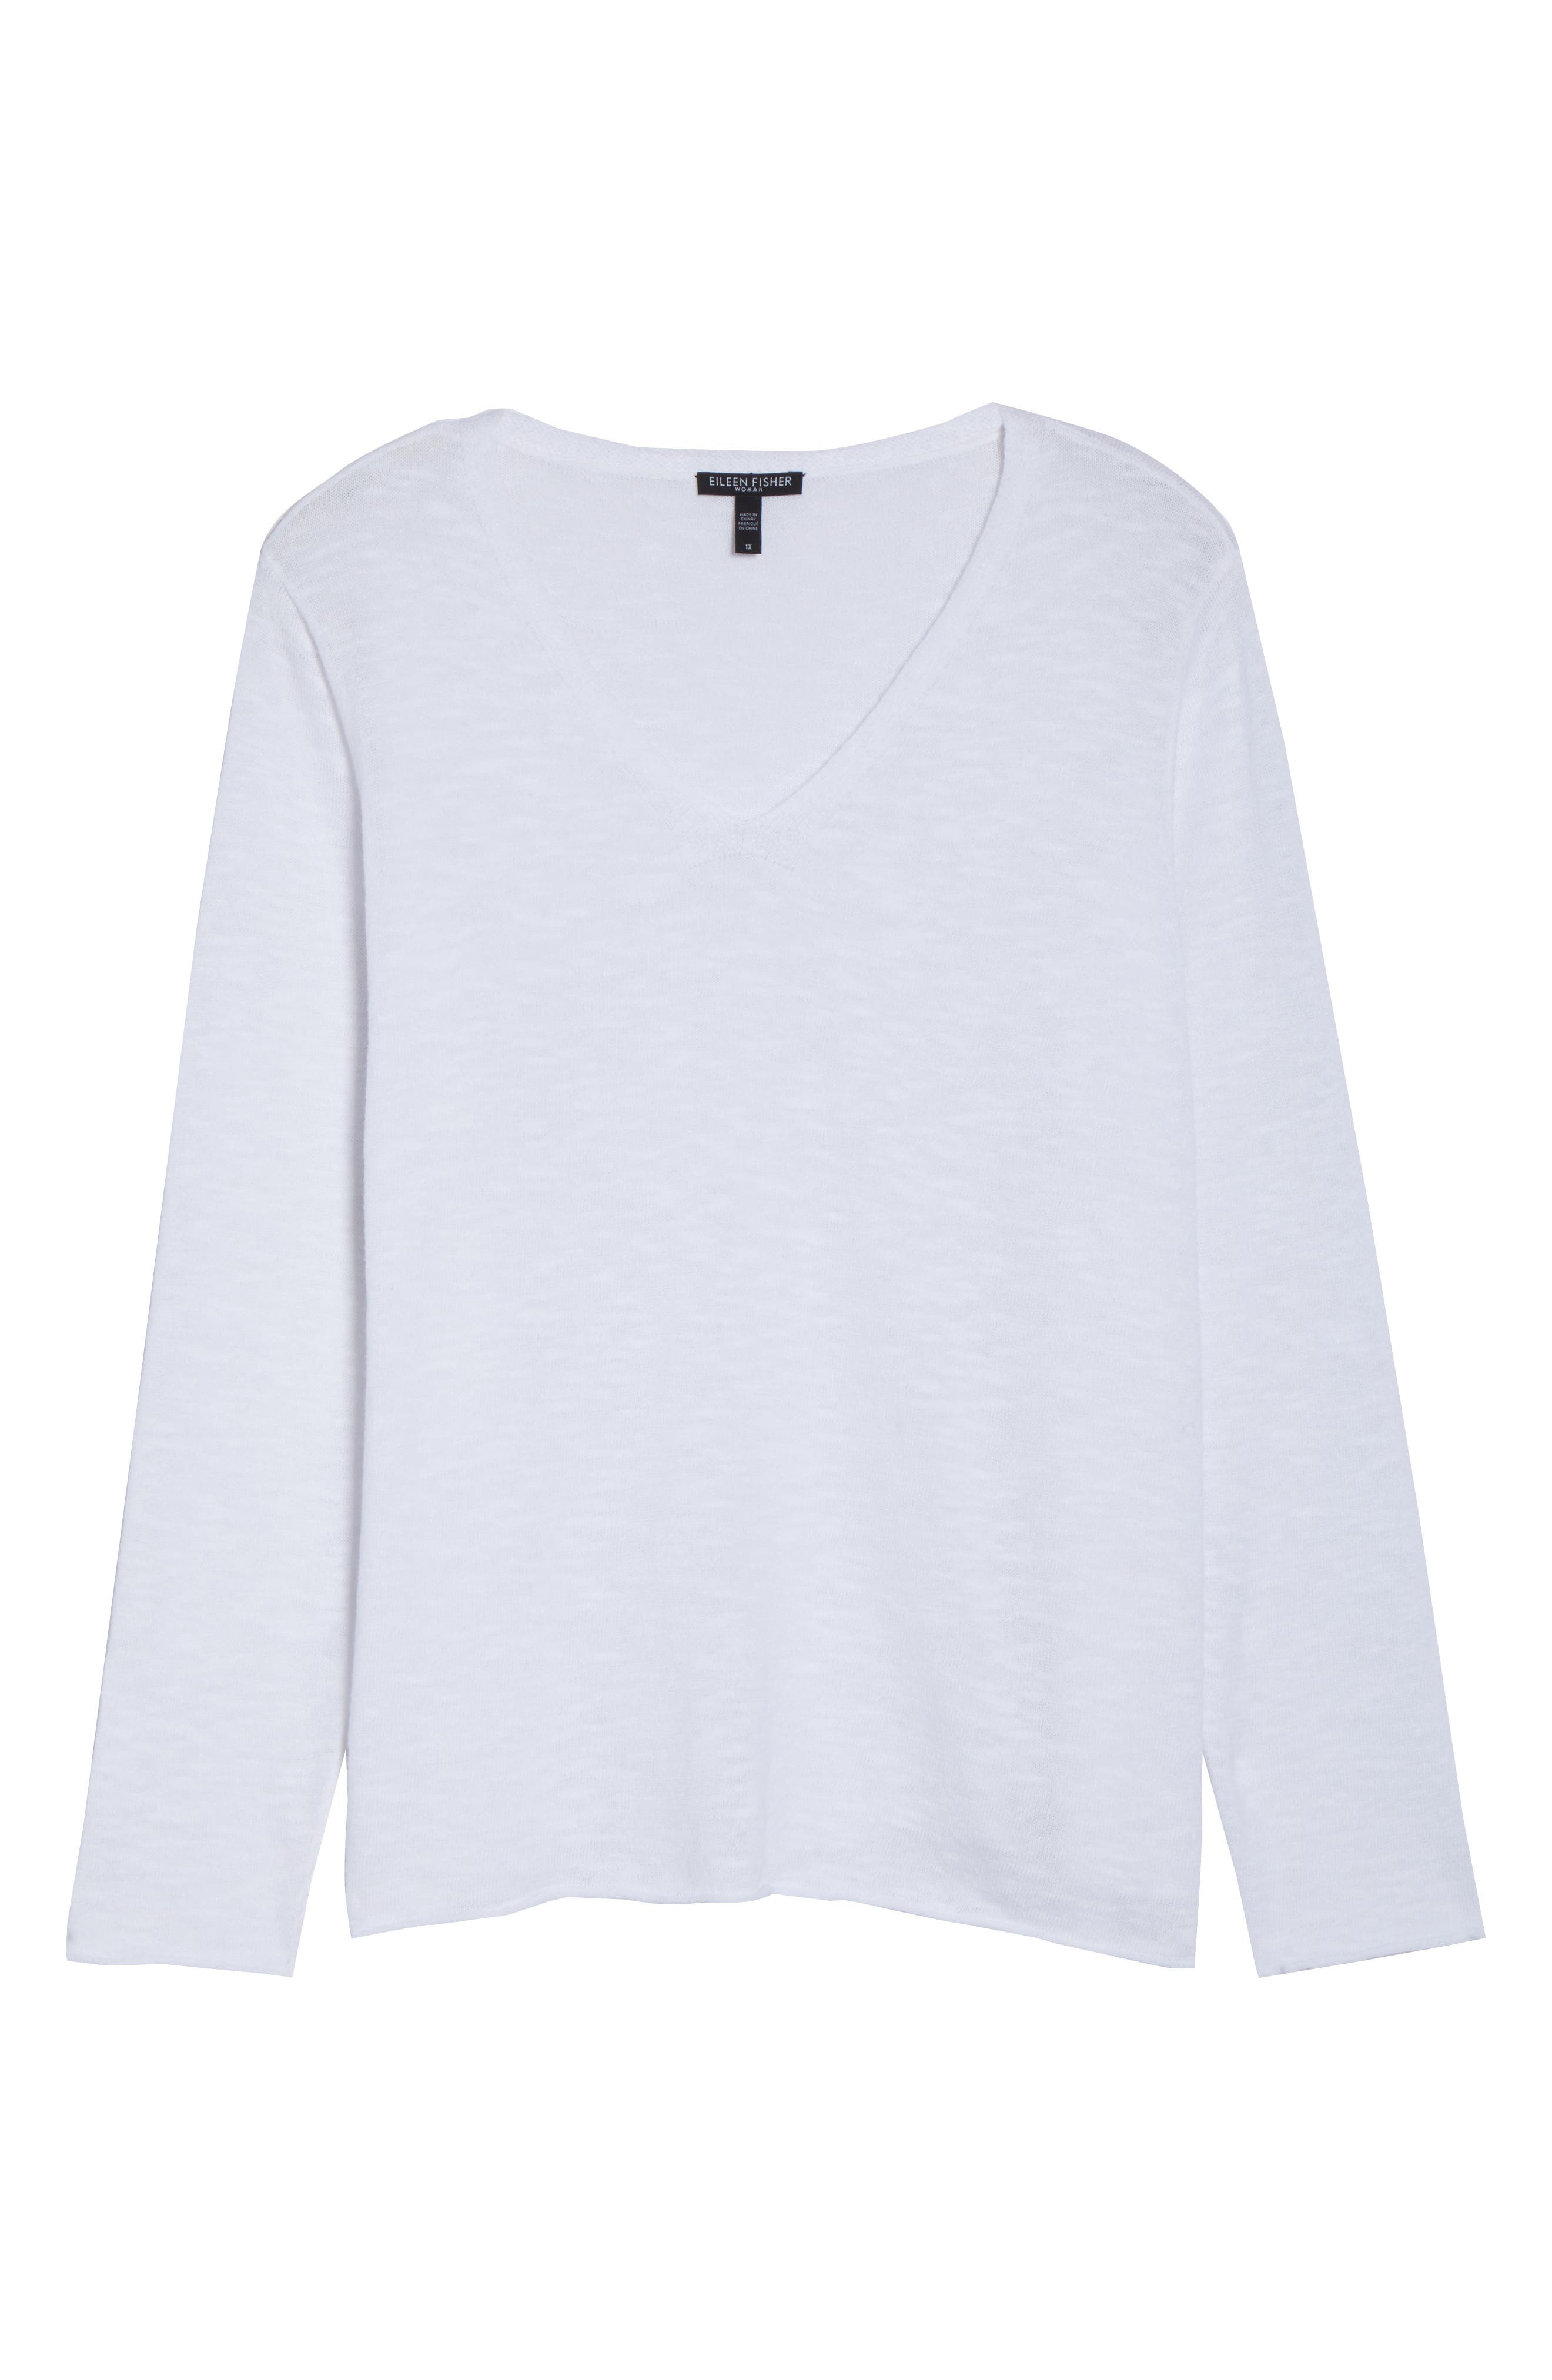 Boxy Organic Linen & Cotton Sweater,                             Alternate thumbnail 7, color,                             White